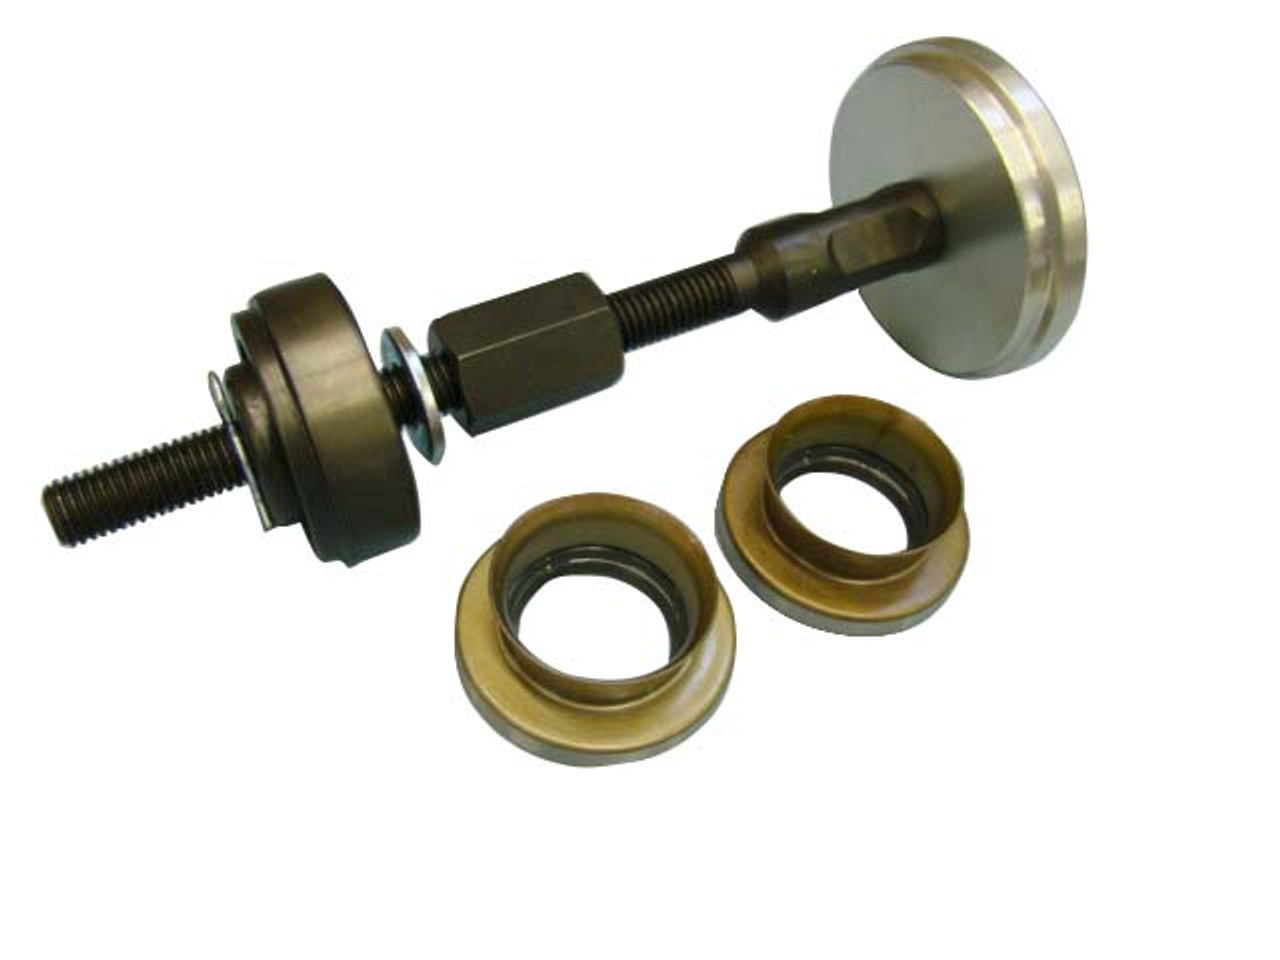 Dana 60 Front Inner Axle Tool And Seal Kit For 7597 Qk4656. Dana 60 Front Inner Axle Seal Tool And Set. Ford. 1993 Ford Front Lockout Axle Removal Diagram At Scoala.co